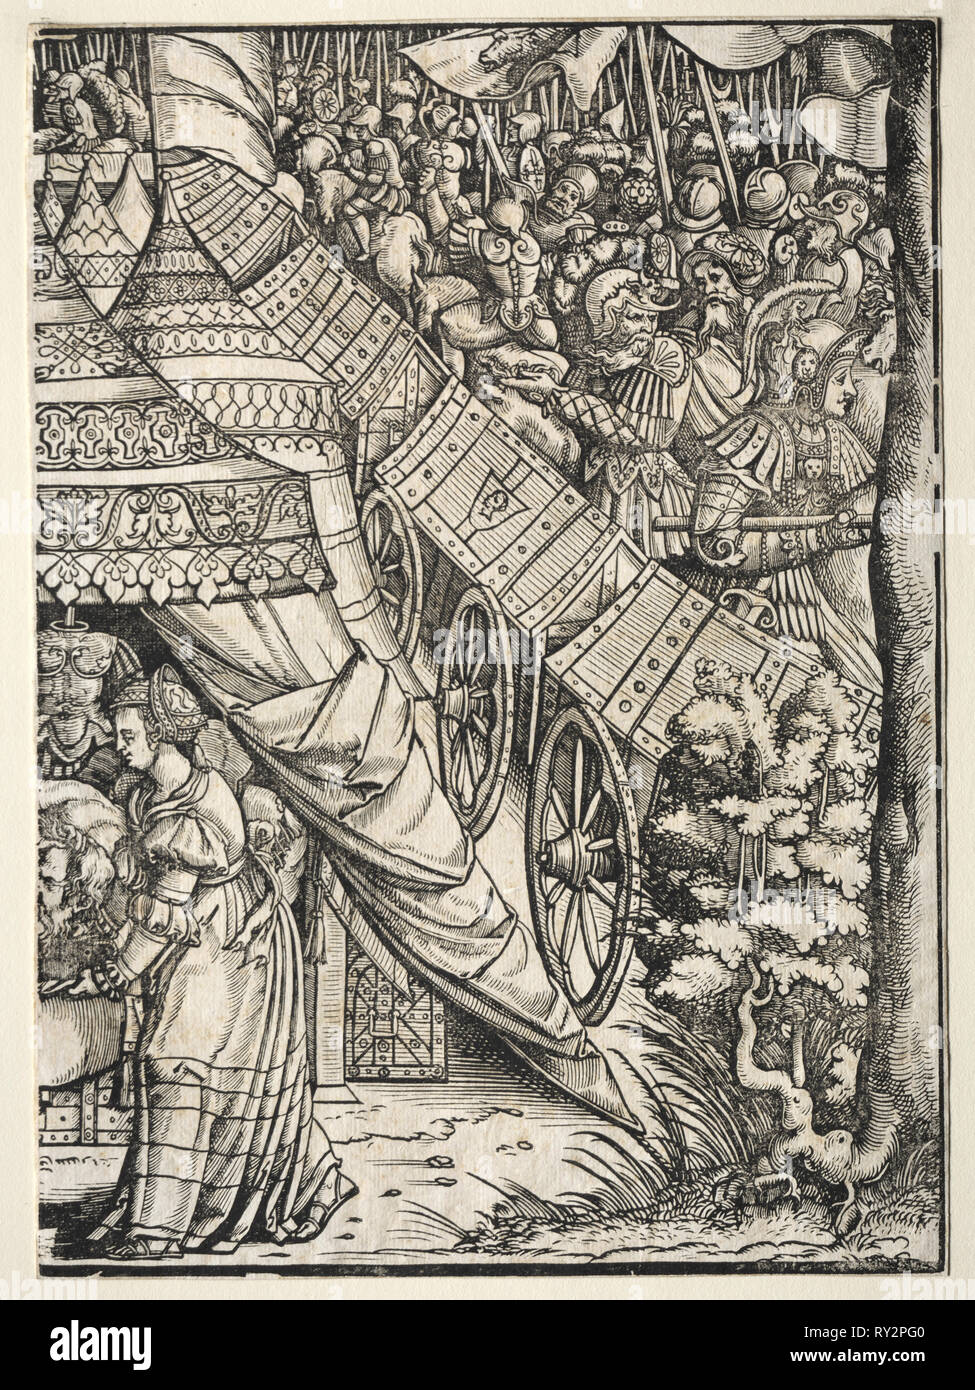 Judith with the Head of Holifernes, 1500s. Germany, 16th century. Woodcut - Stock Image